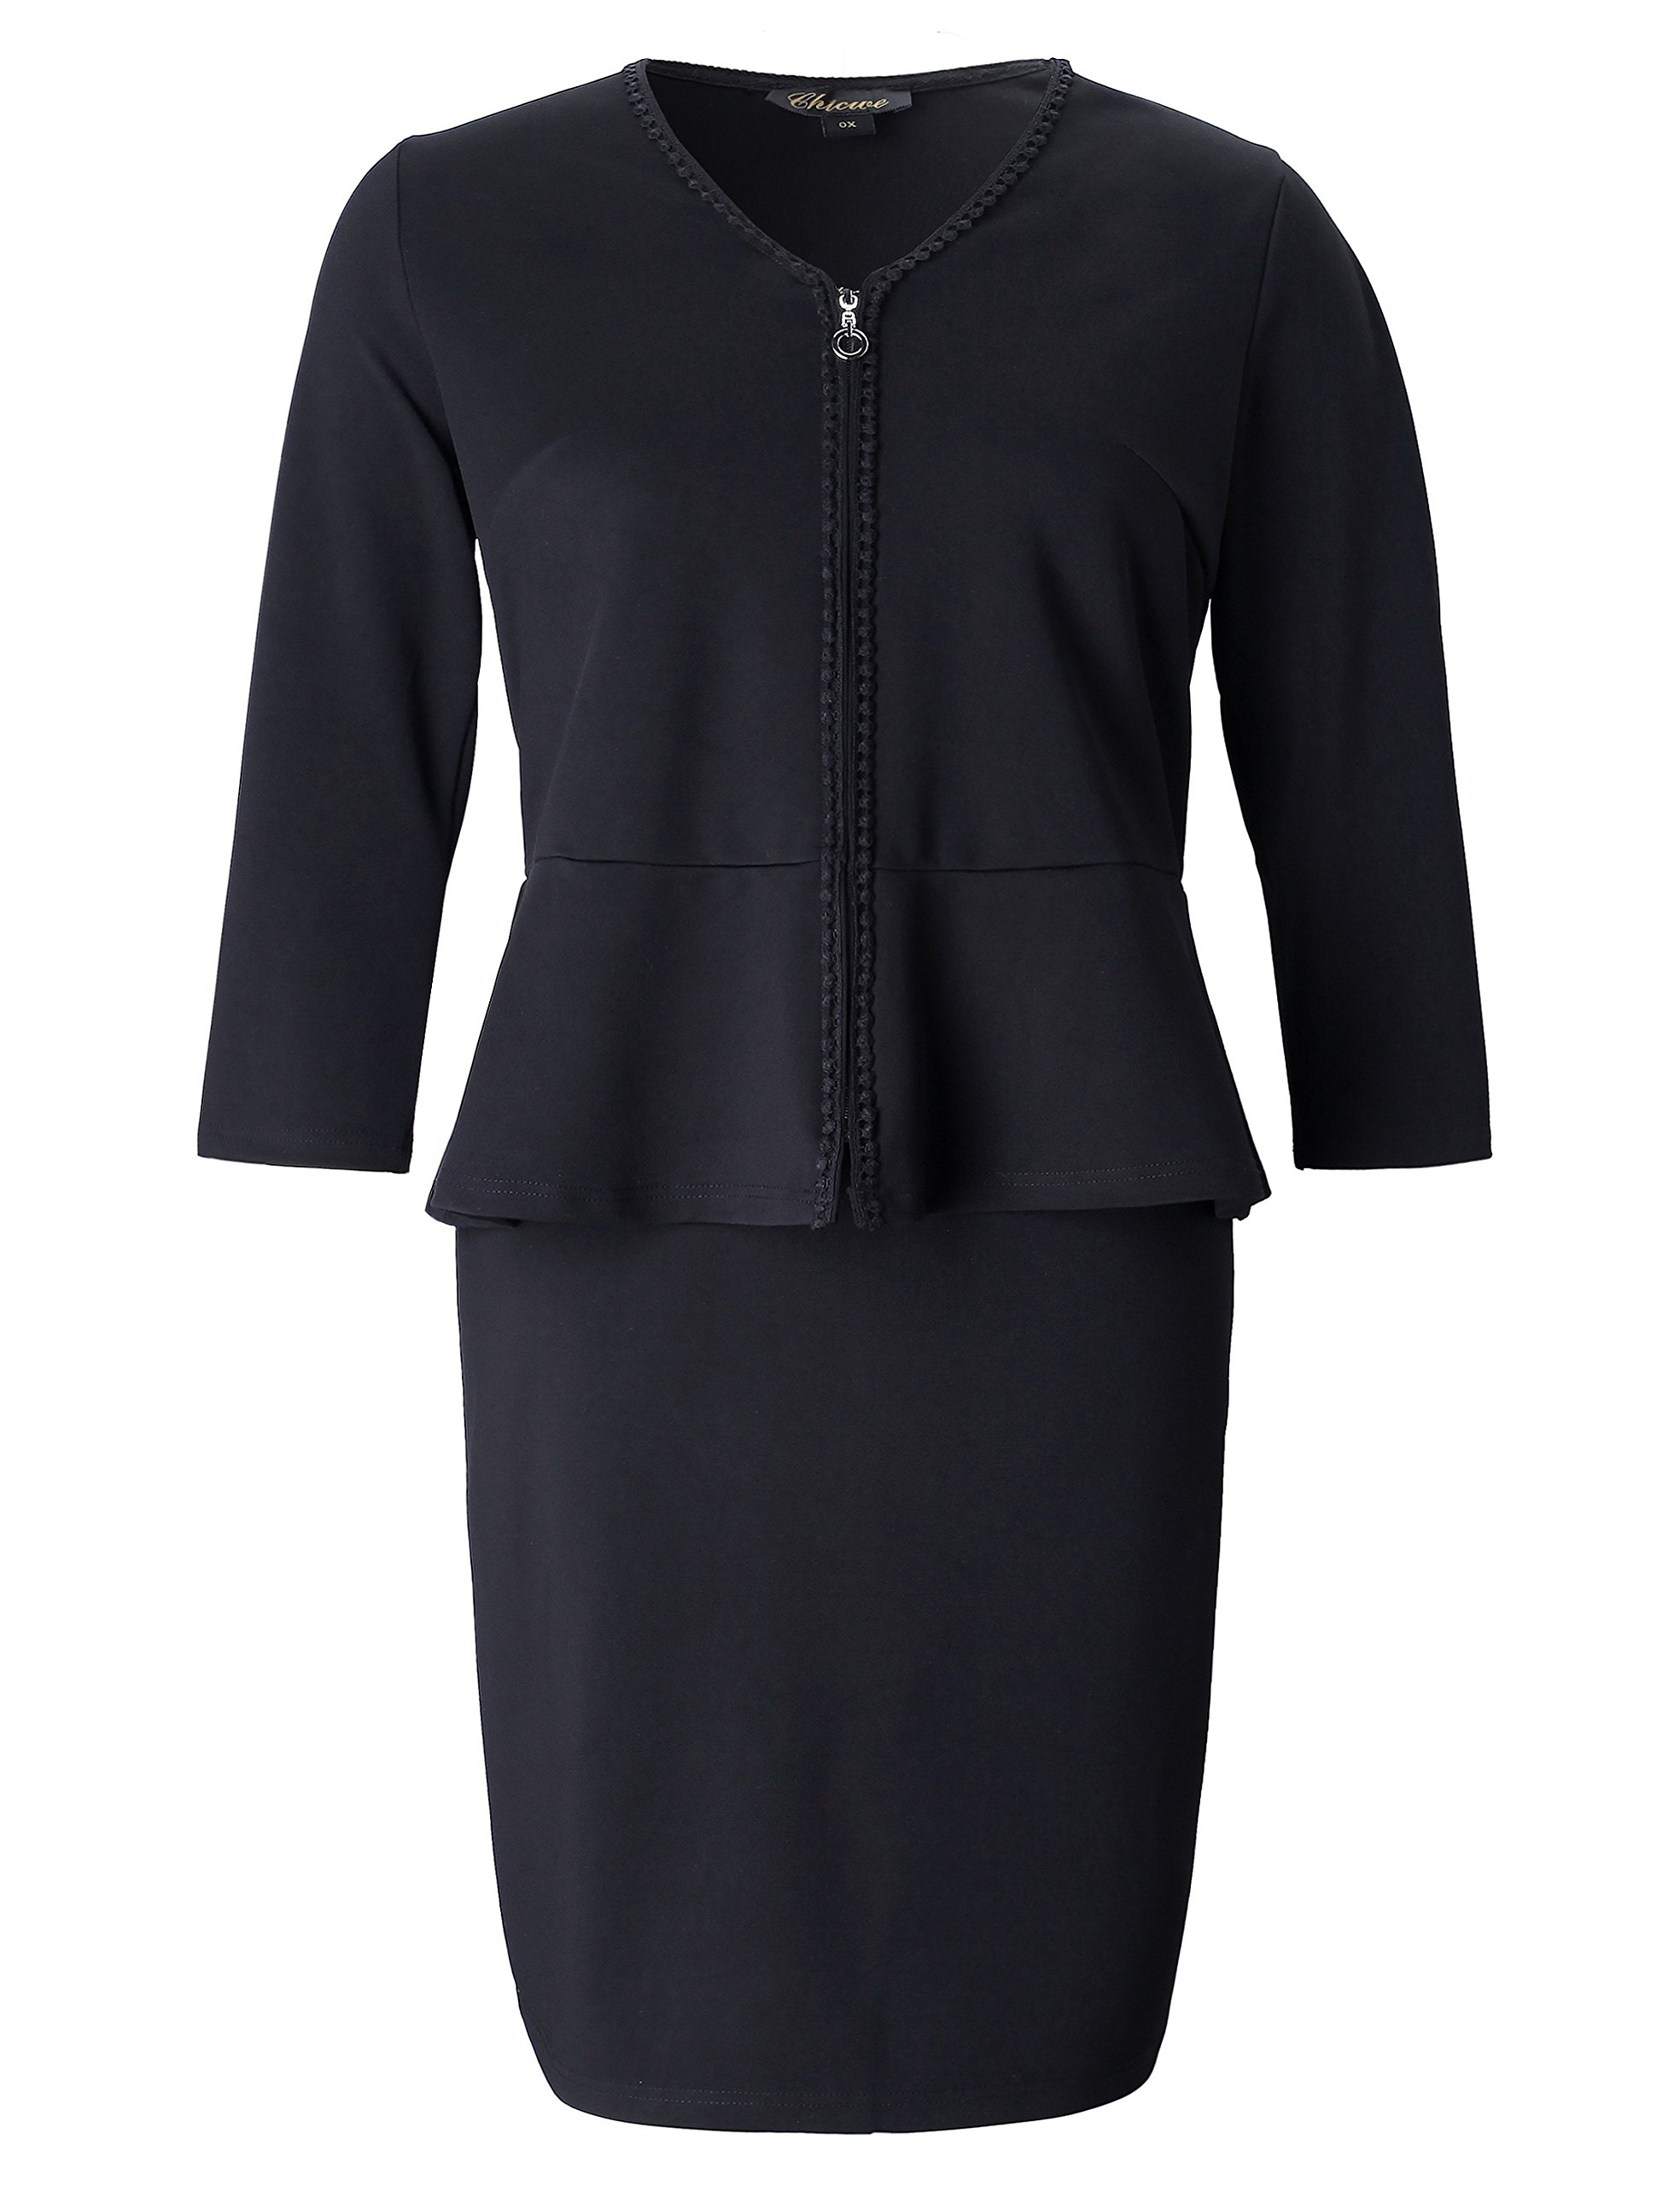 Chicwe Women's Plus Size Stretch Zip Front 2 in 1 Set Peplum Dress with Trim - Knee Length Work and Casual Dress 3X